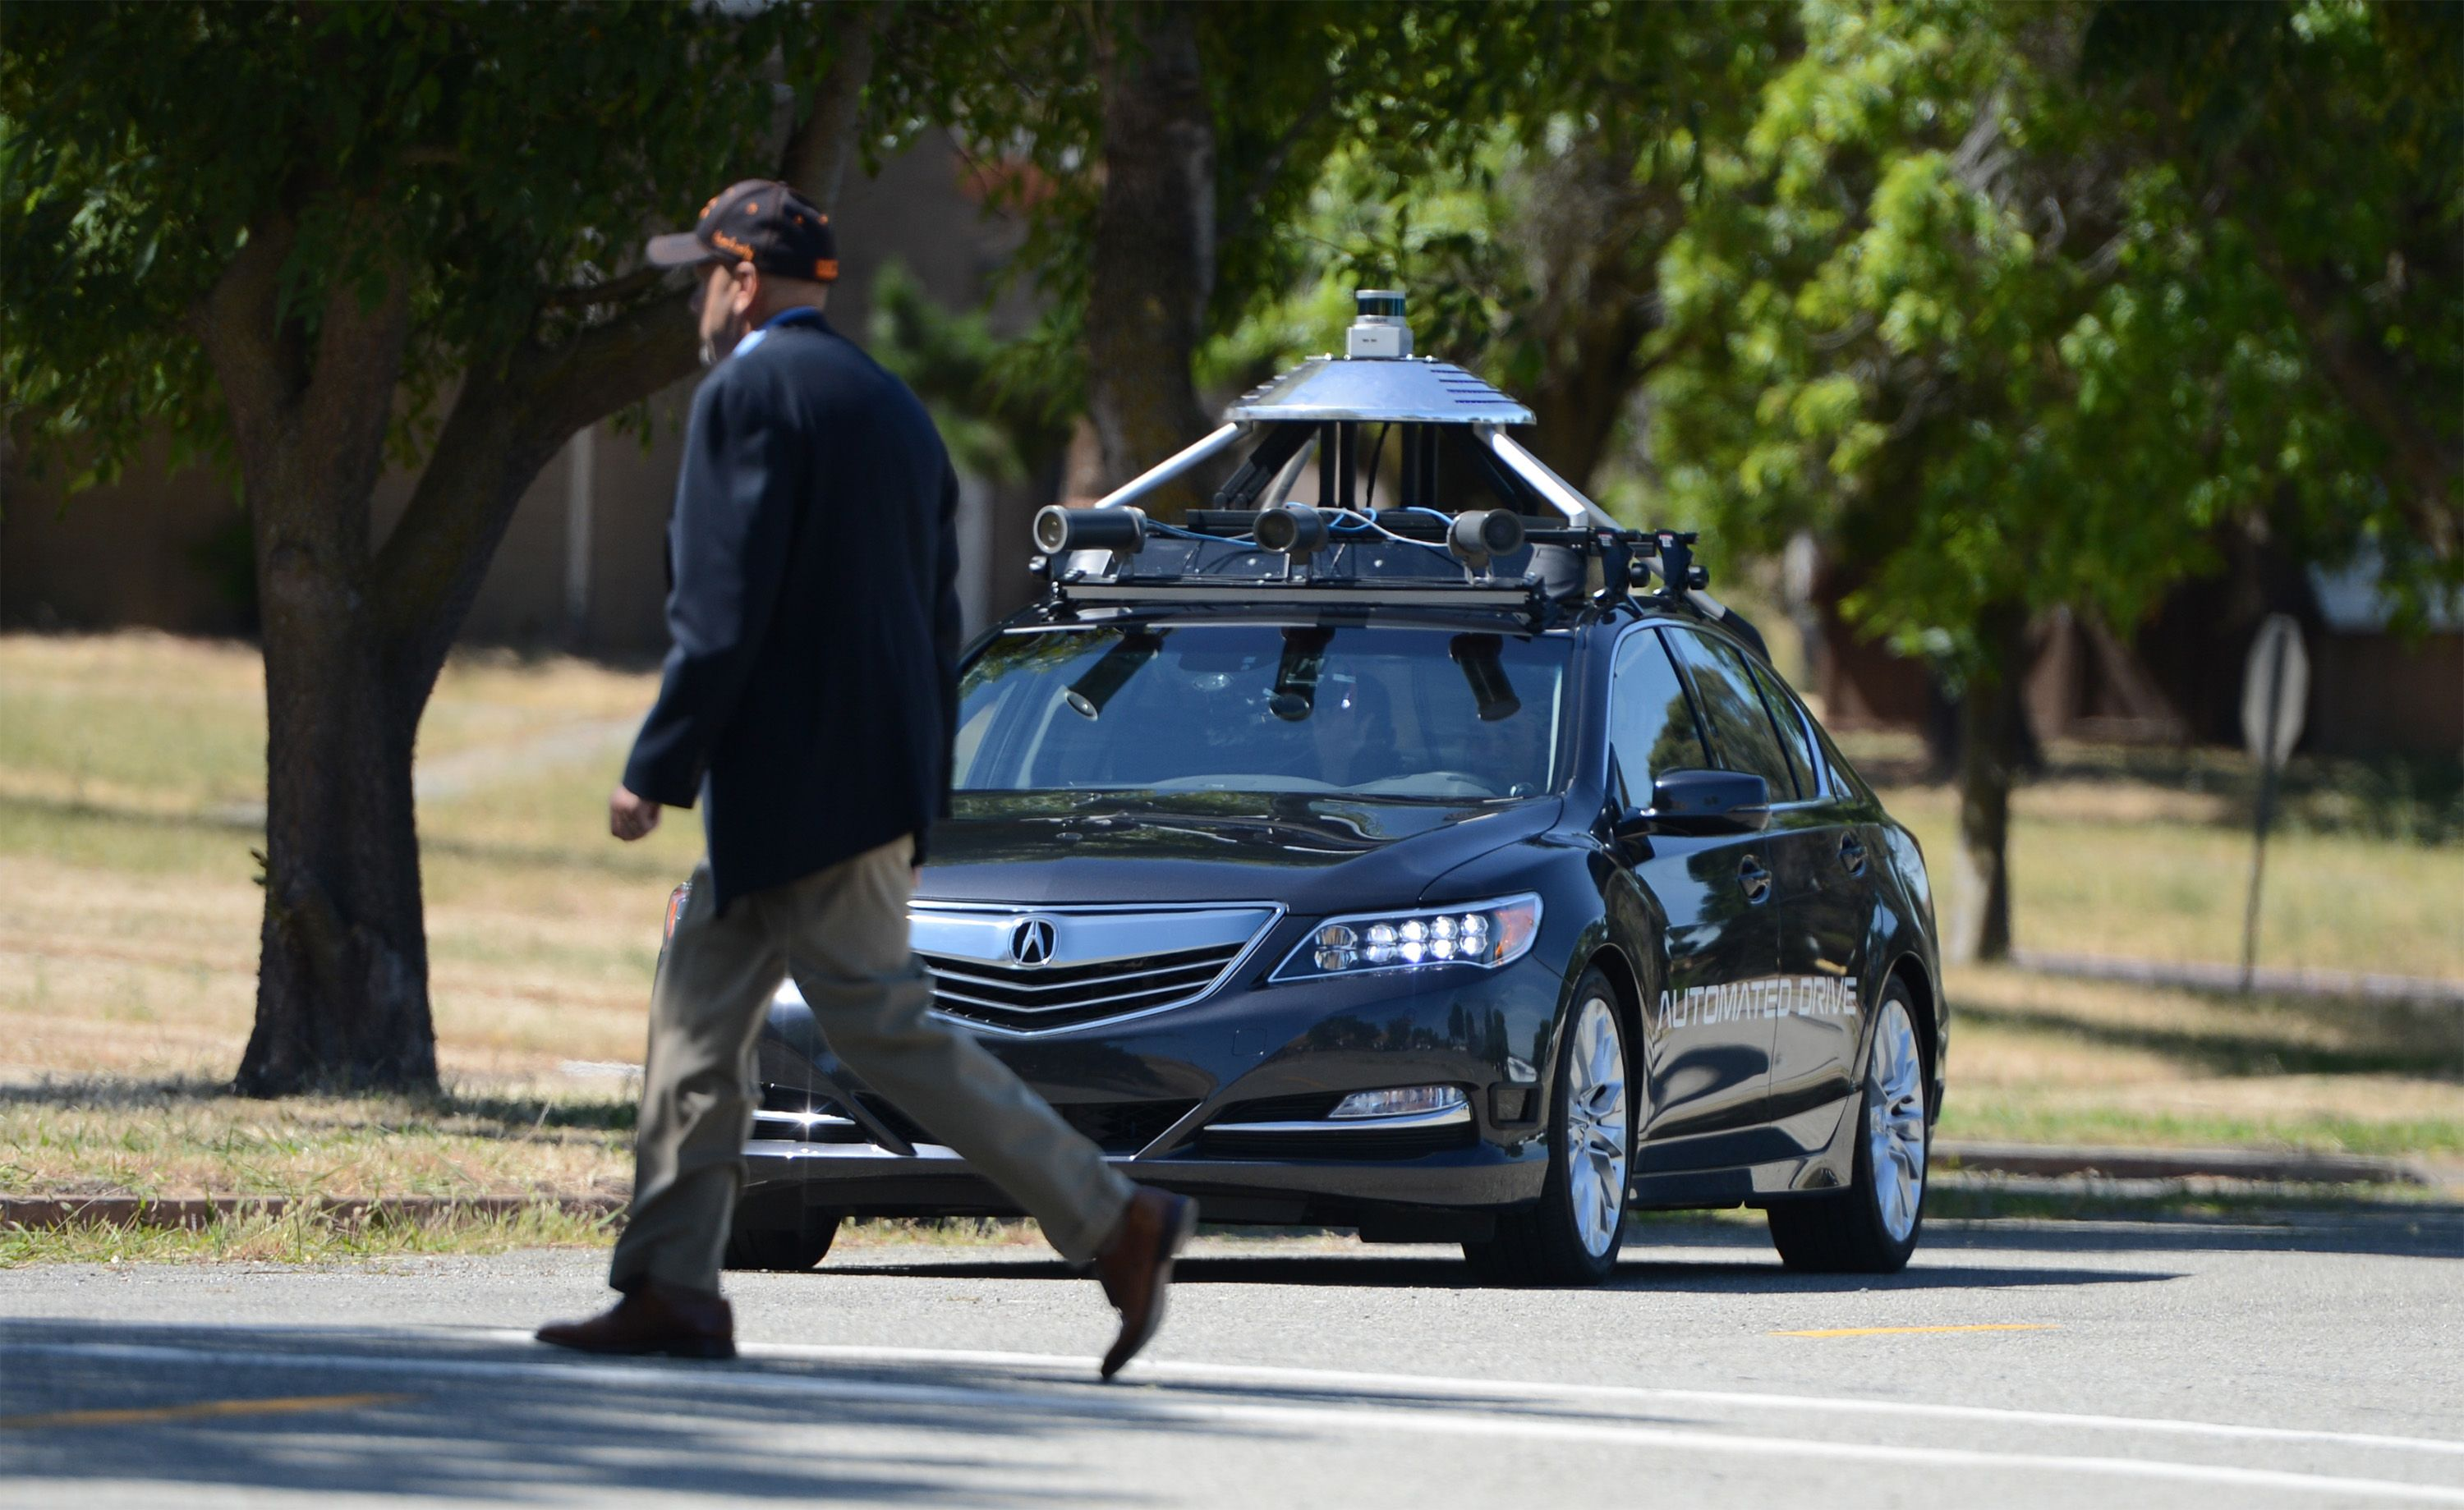 To prep for robot driving, some want to reprogram pedestrians | The